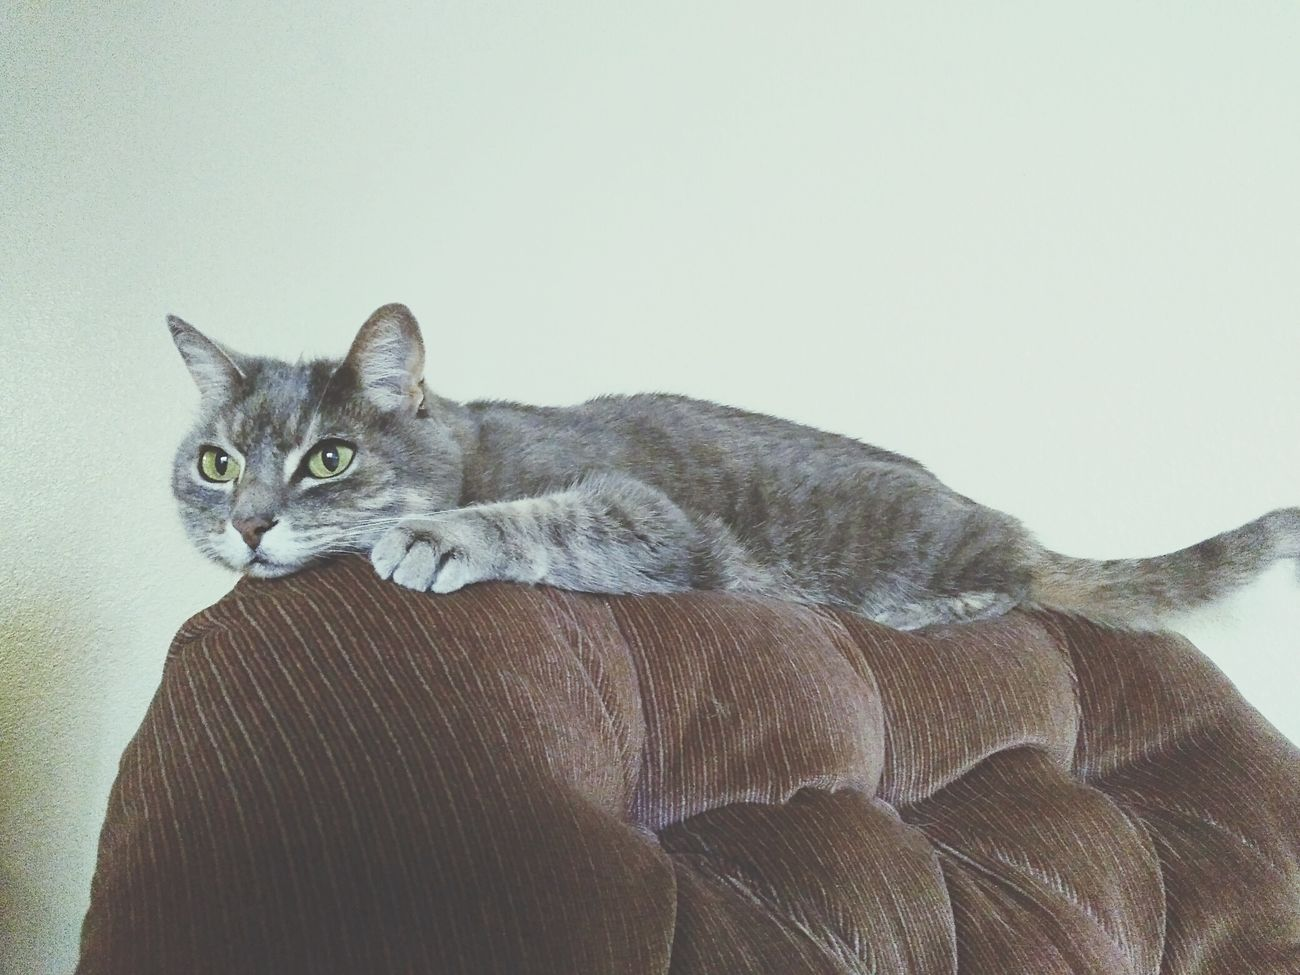 My Cat Hanging Out, Relaxing